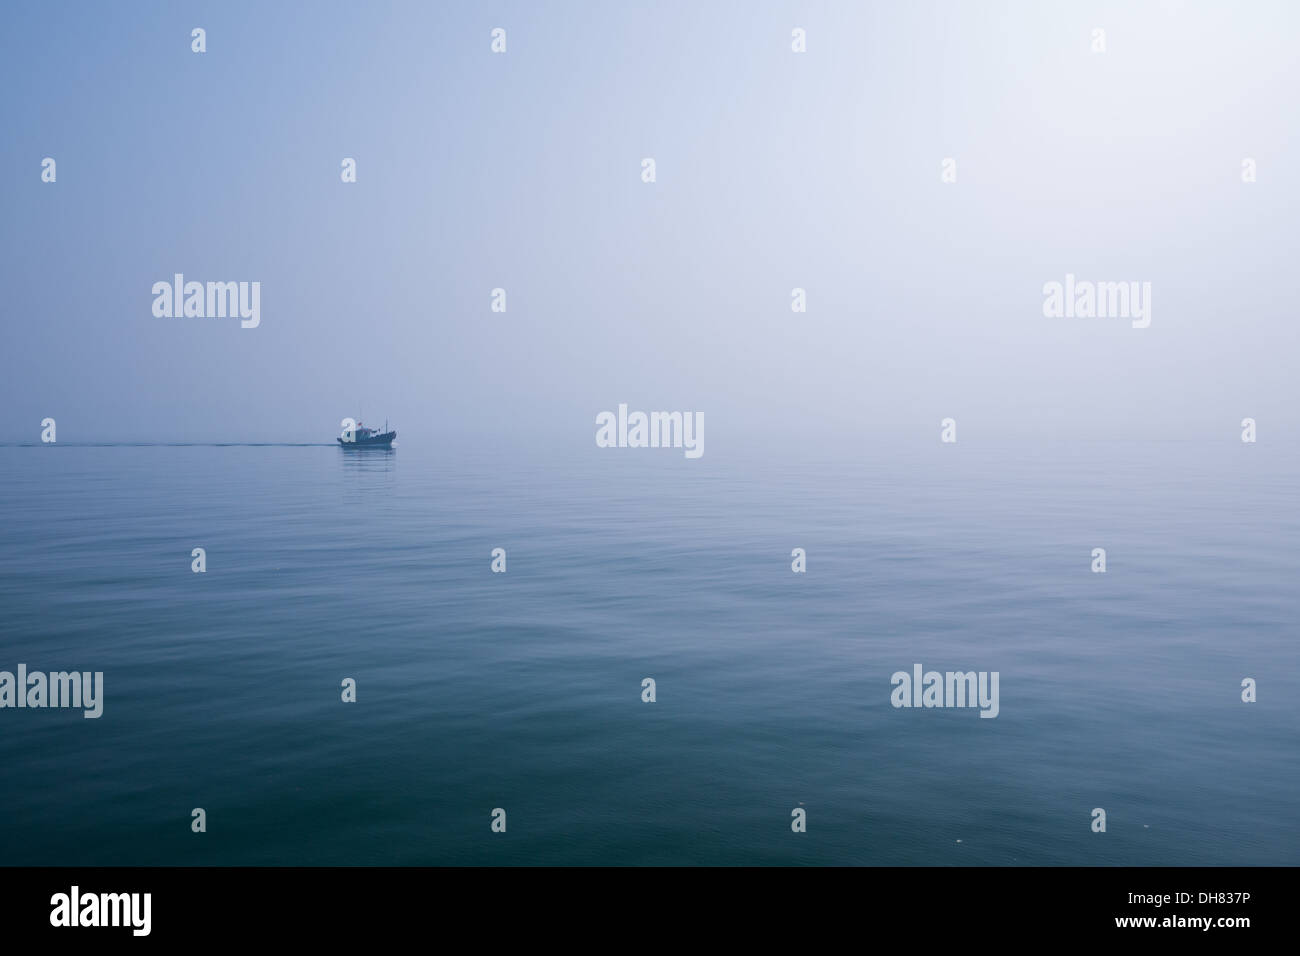 A lonely boat on Lan Ha Bay, Halong Bay, Vietnam. - Stock Image